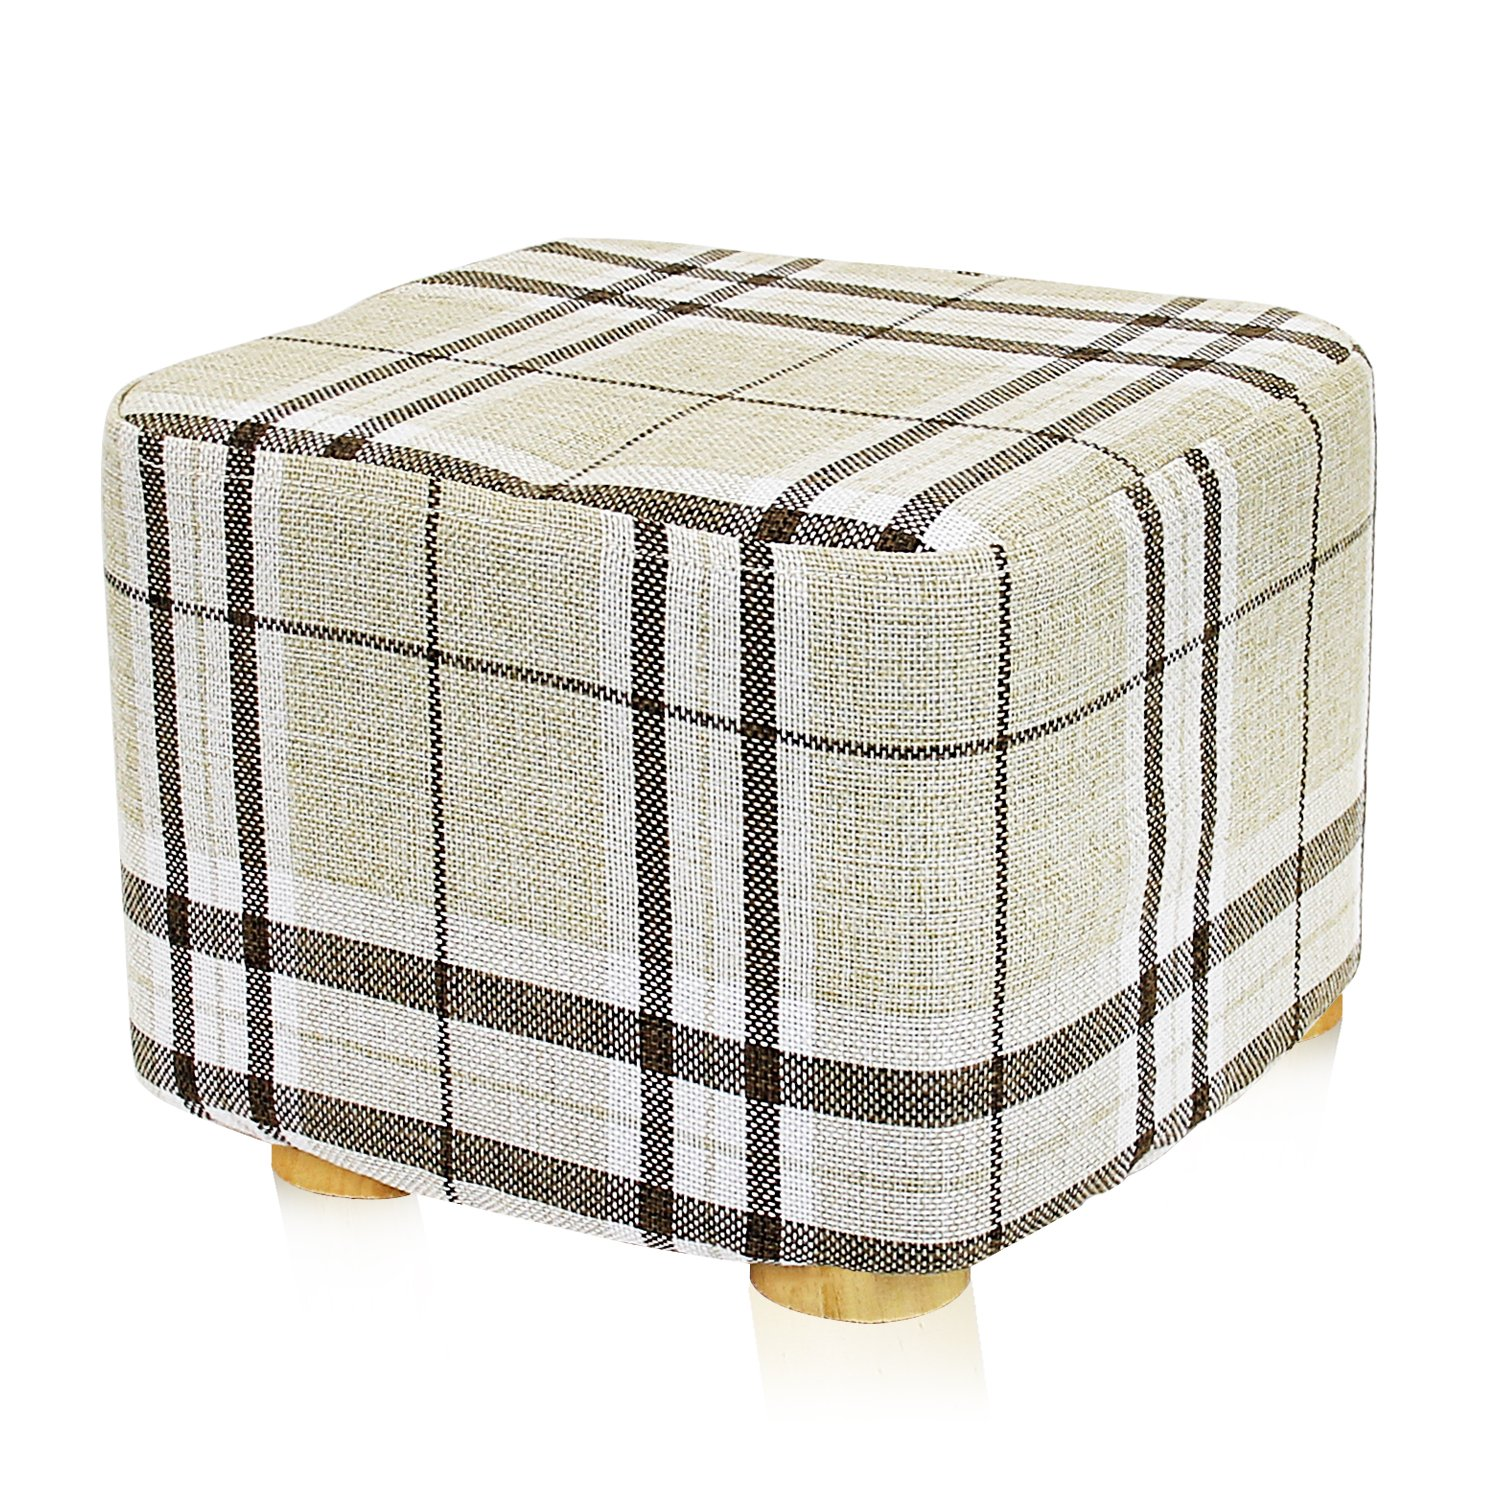 DL furniture - Square Ottoman Foot Stool, 4 Leg Stands, Short Leg, Square Shape | Linen Fabric, Striped Cover